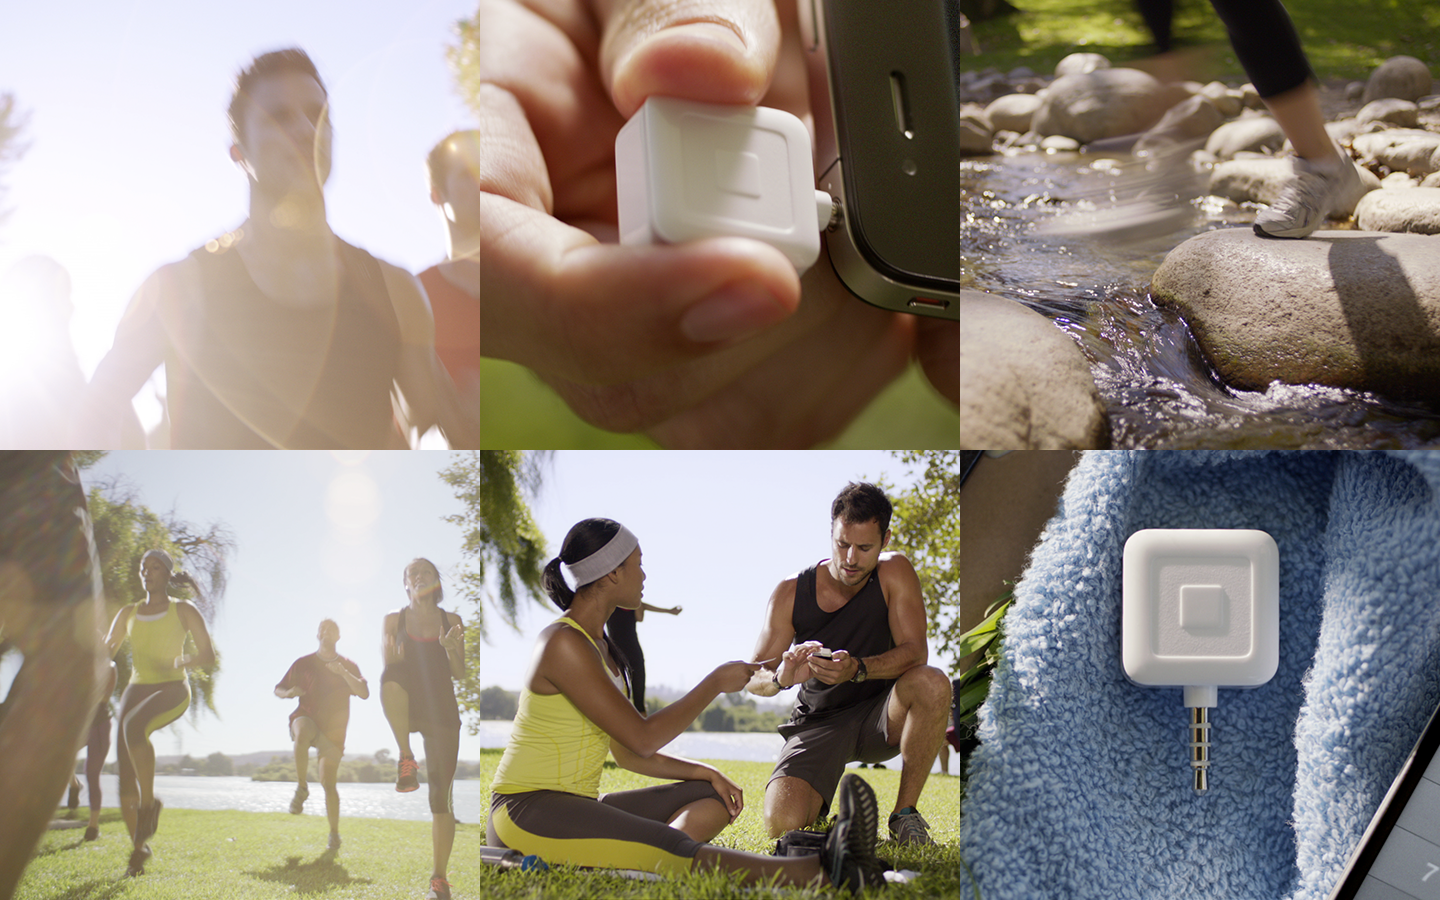 TV Commercial for Square (:30, Trainer)